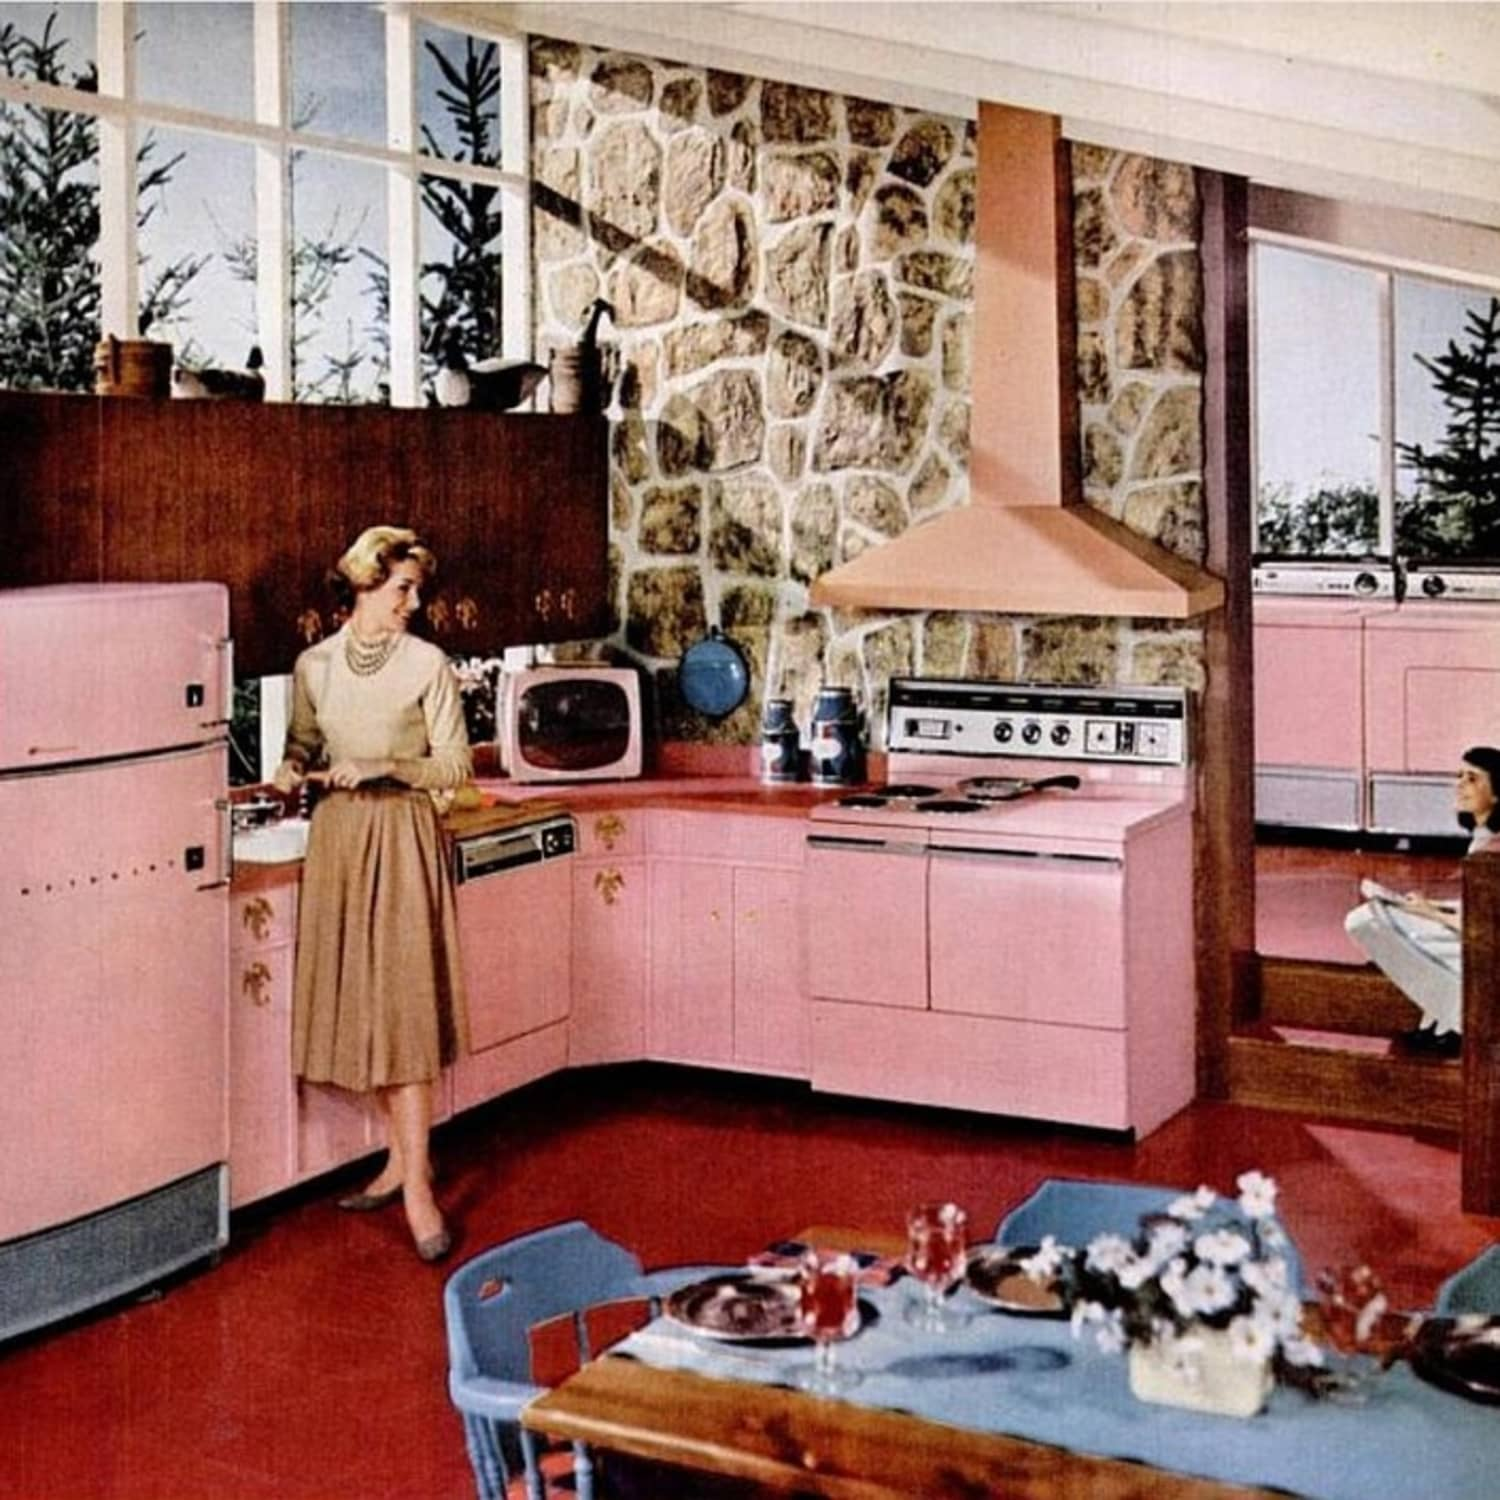 Brief History of the Kitchen from the 1950s to 1960s ...